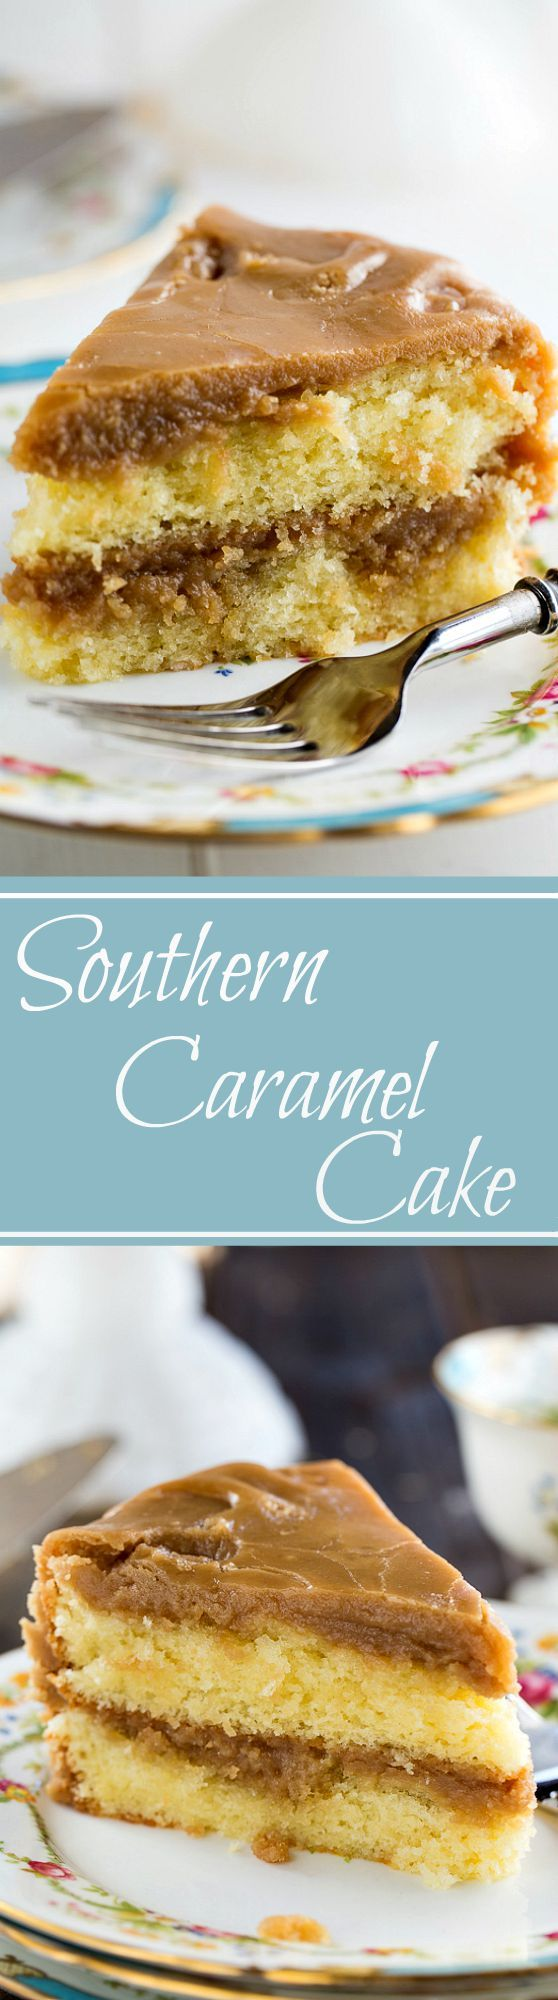 Southern Caramel Cake – moist, vanilla cake with lots of ultra-sweet caramel icing.